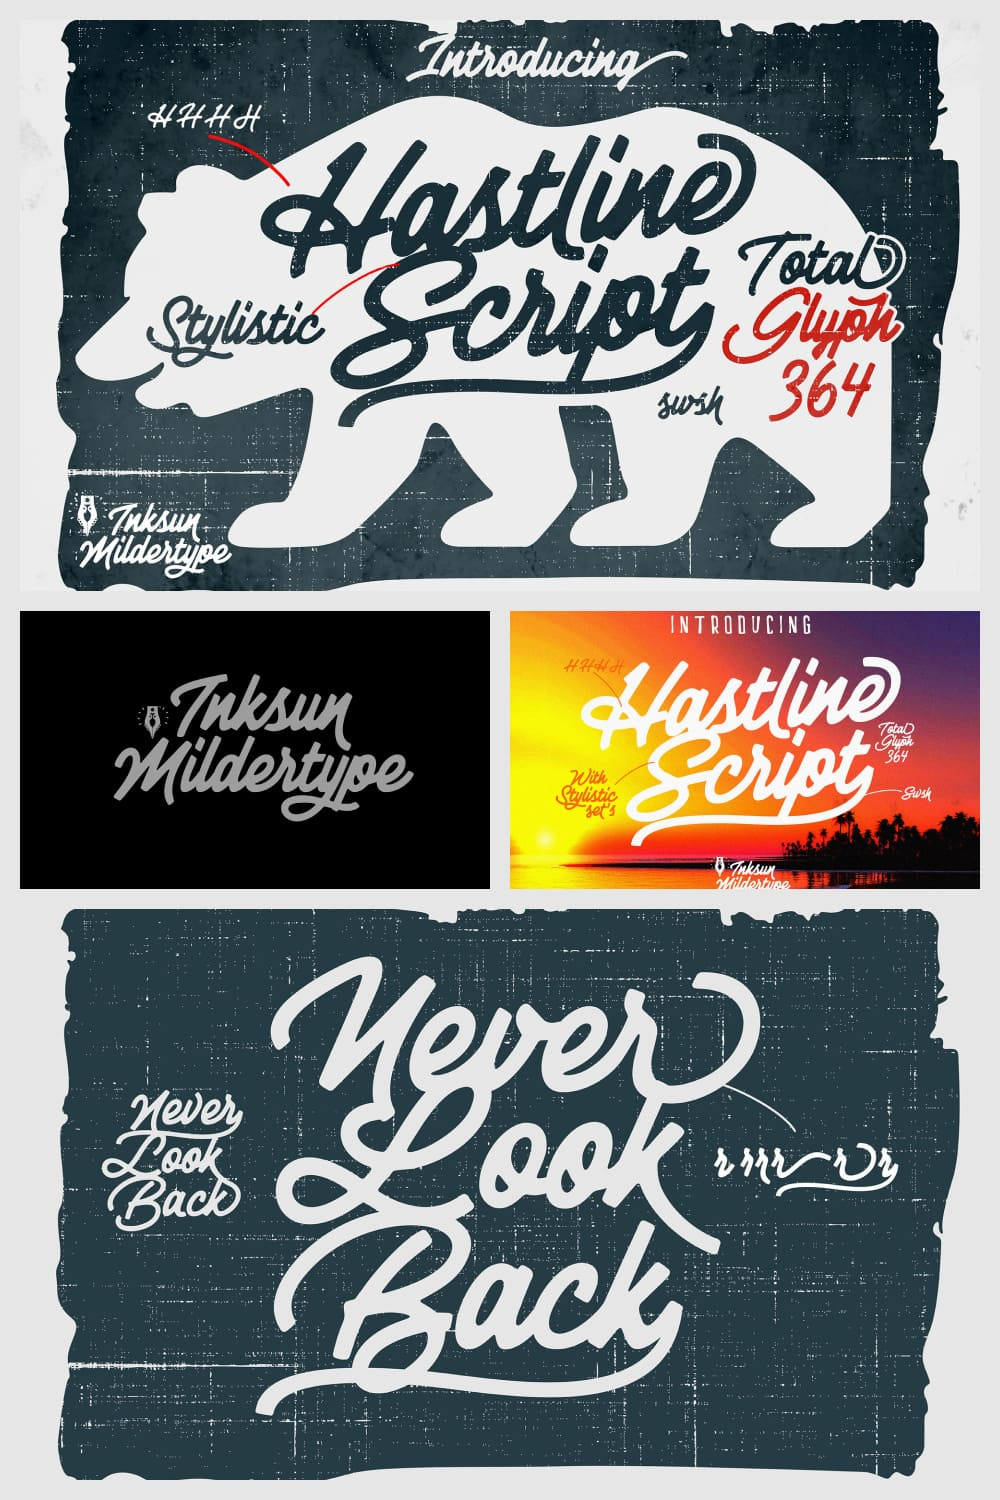 Hastline is a superb script typeface aimed for graphic designers who are looking to go creative creating posters, logos, invitation cards and more.